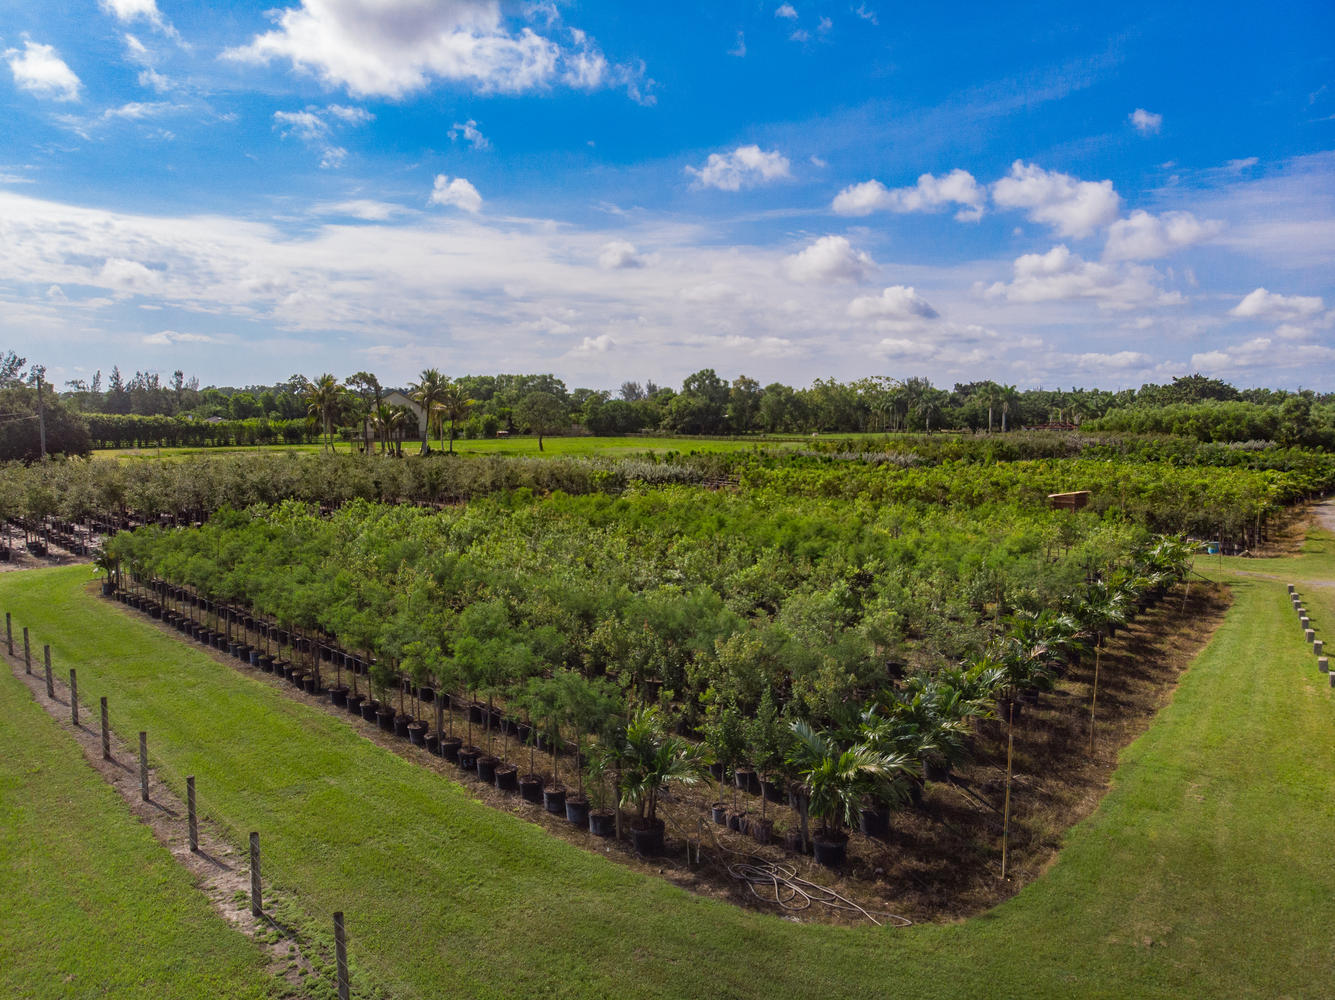 16424 Van Gogh Road, Loxahatchee, Florida 33470, ,Land,For Sale,Van Gogh,RX-10544548